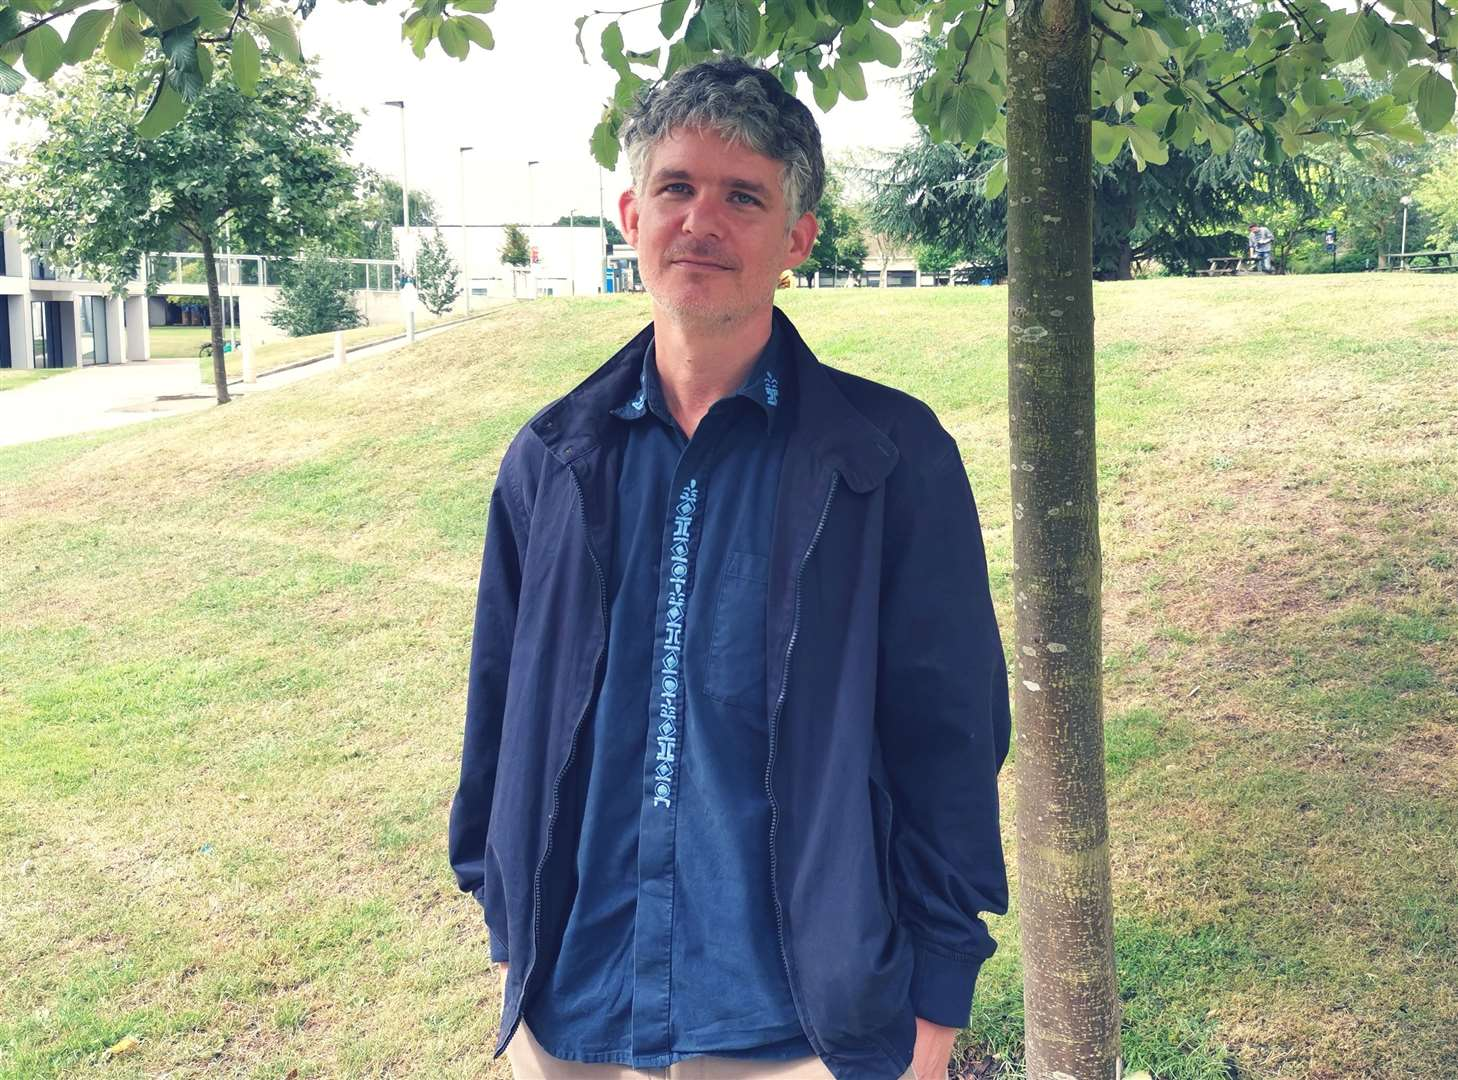 Dr Gardner has called on local councils to plant more trees to help reverse climate change pollution